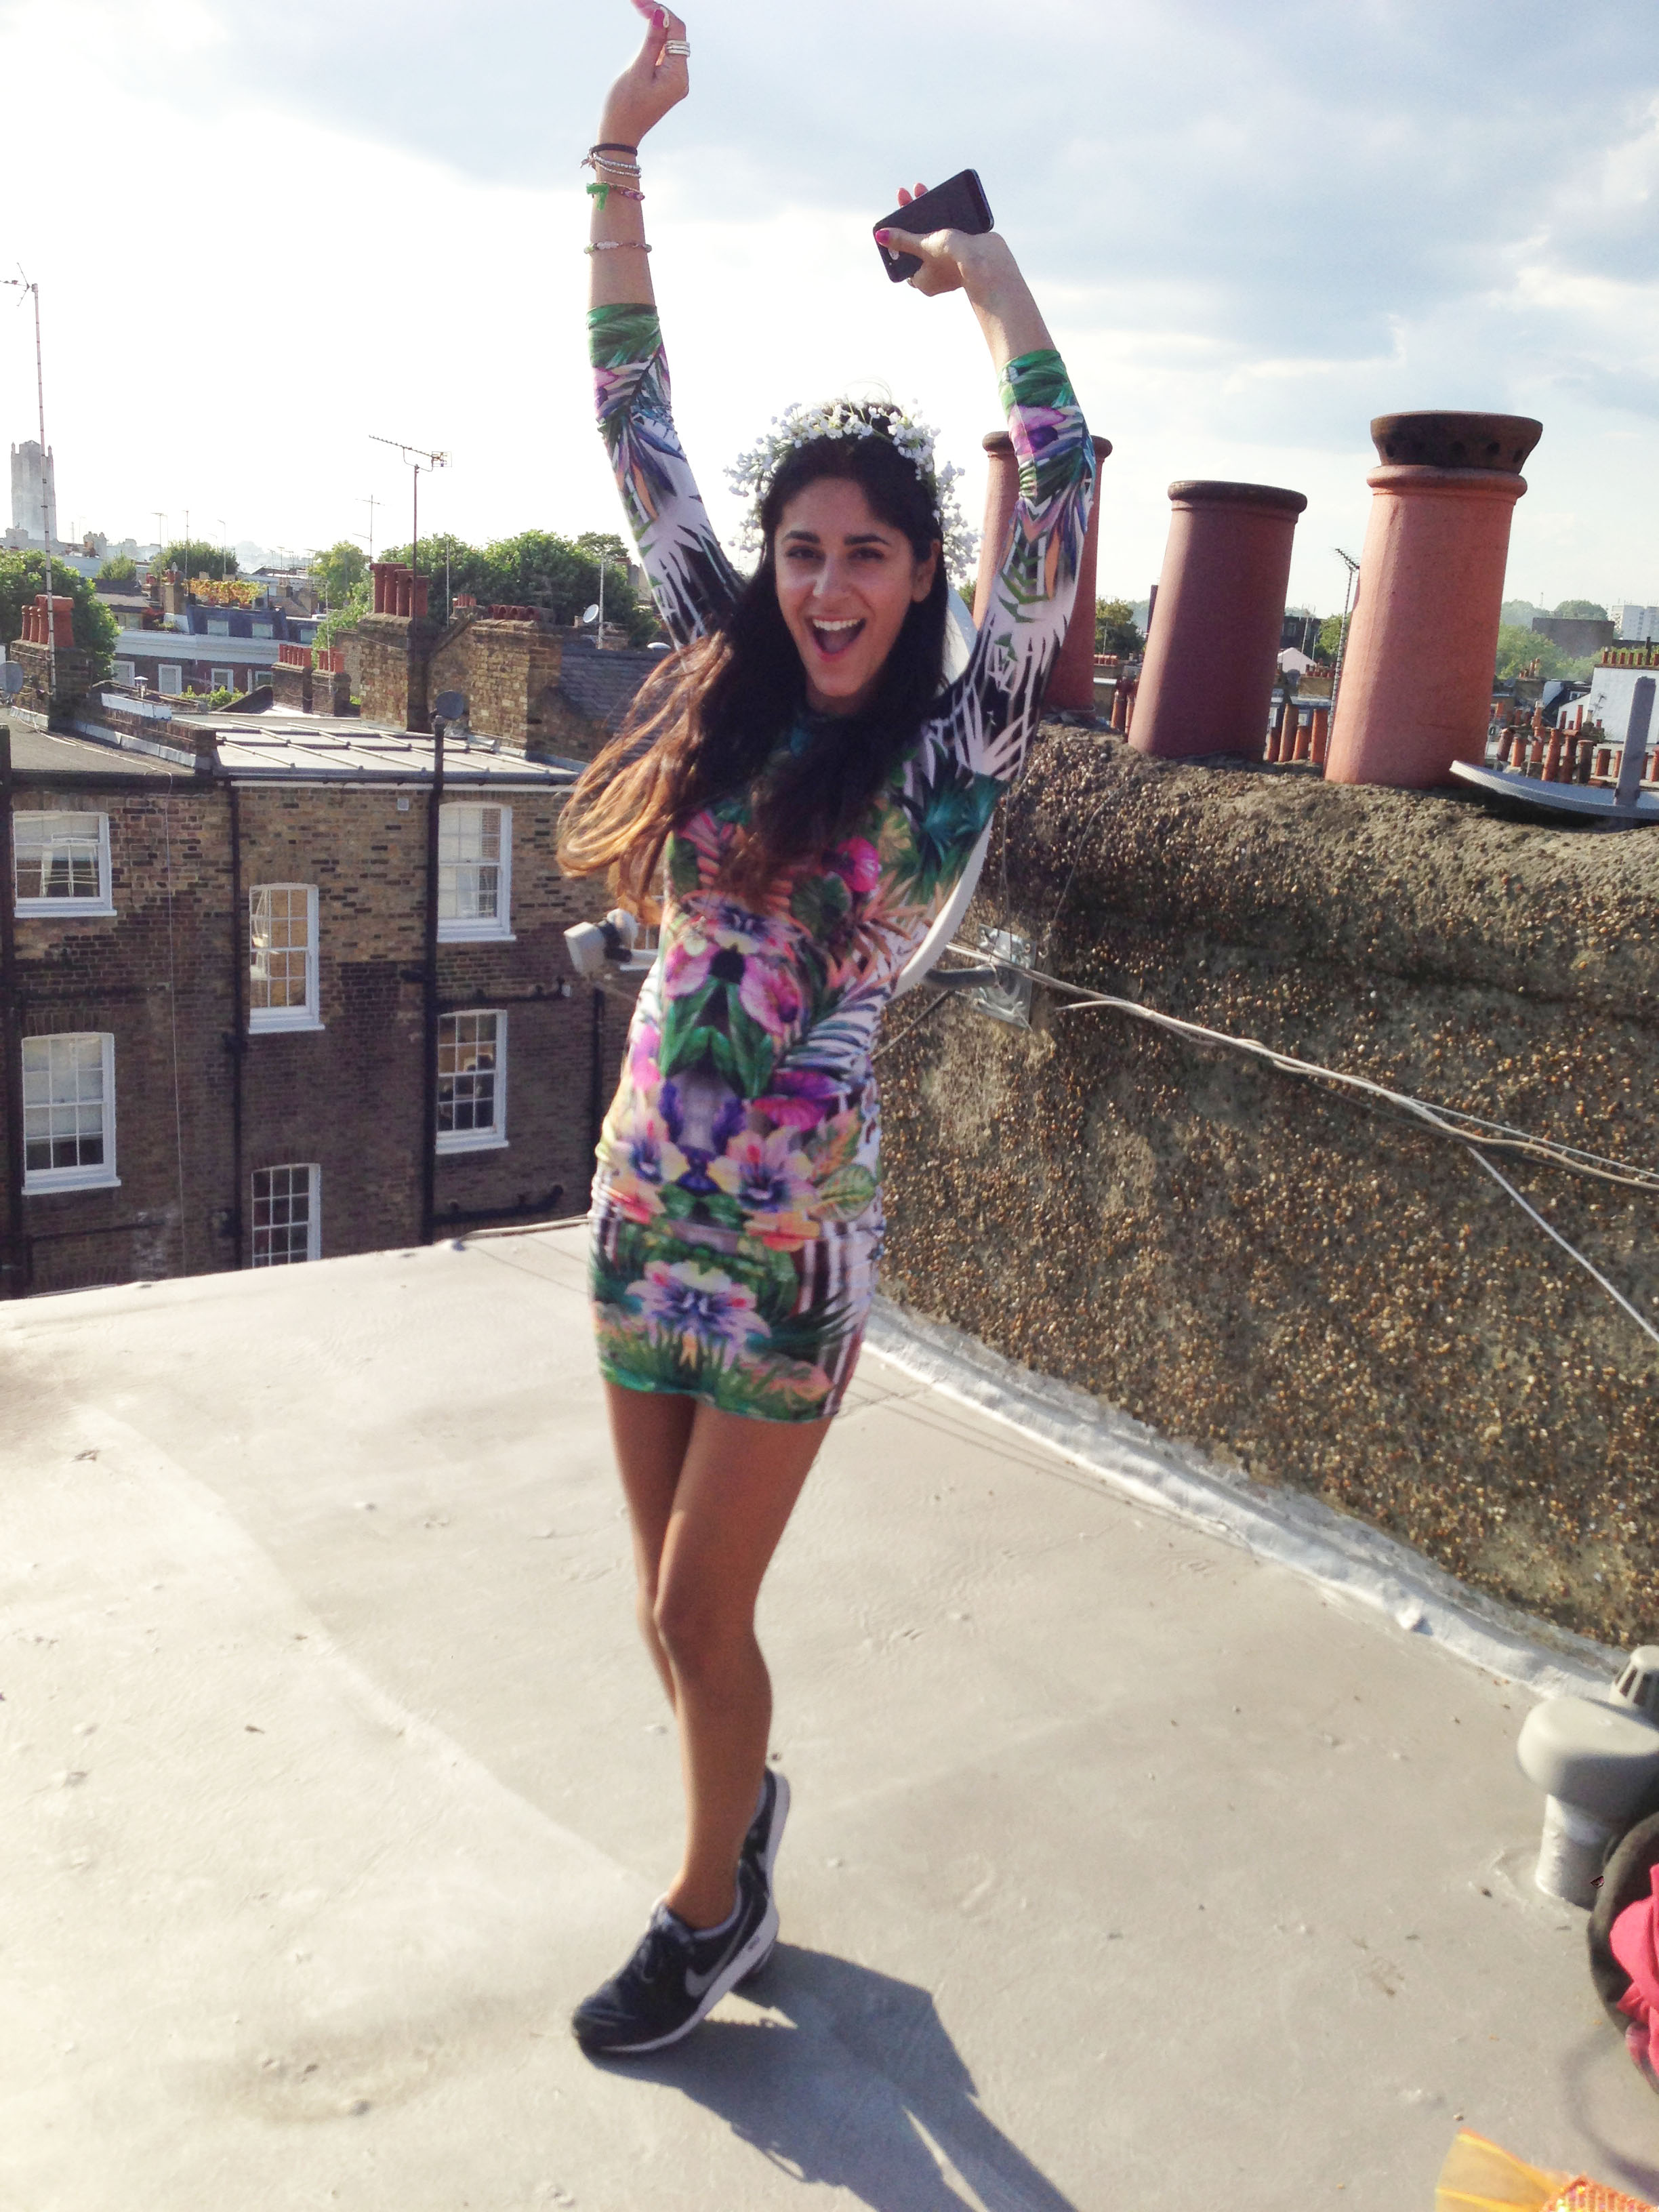 Here's me on the roof before the party!